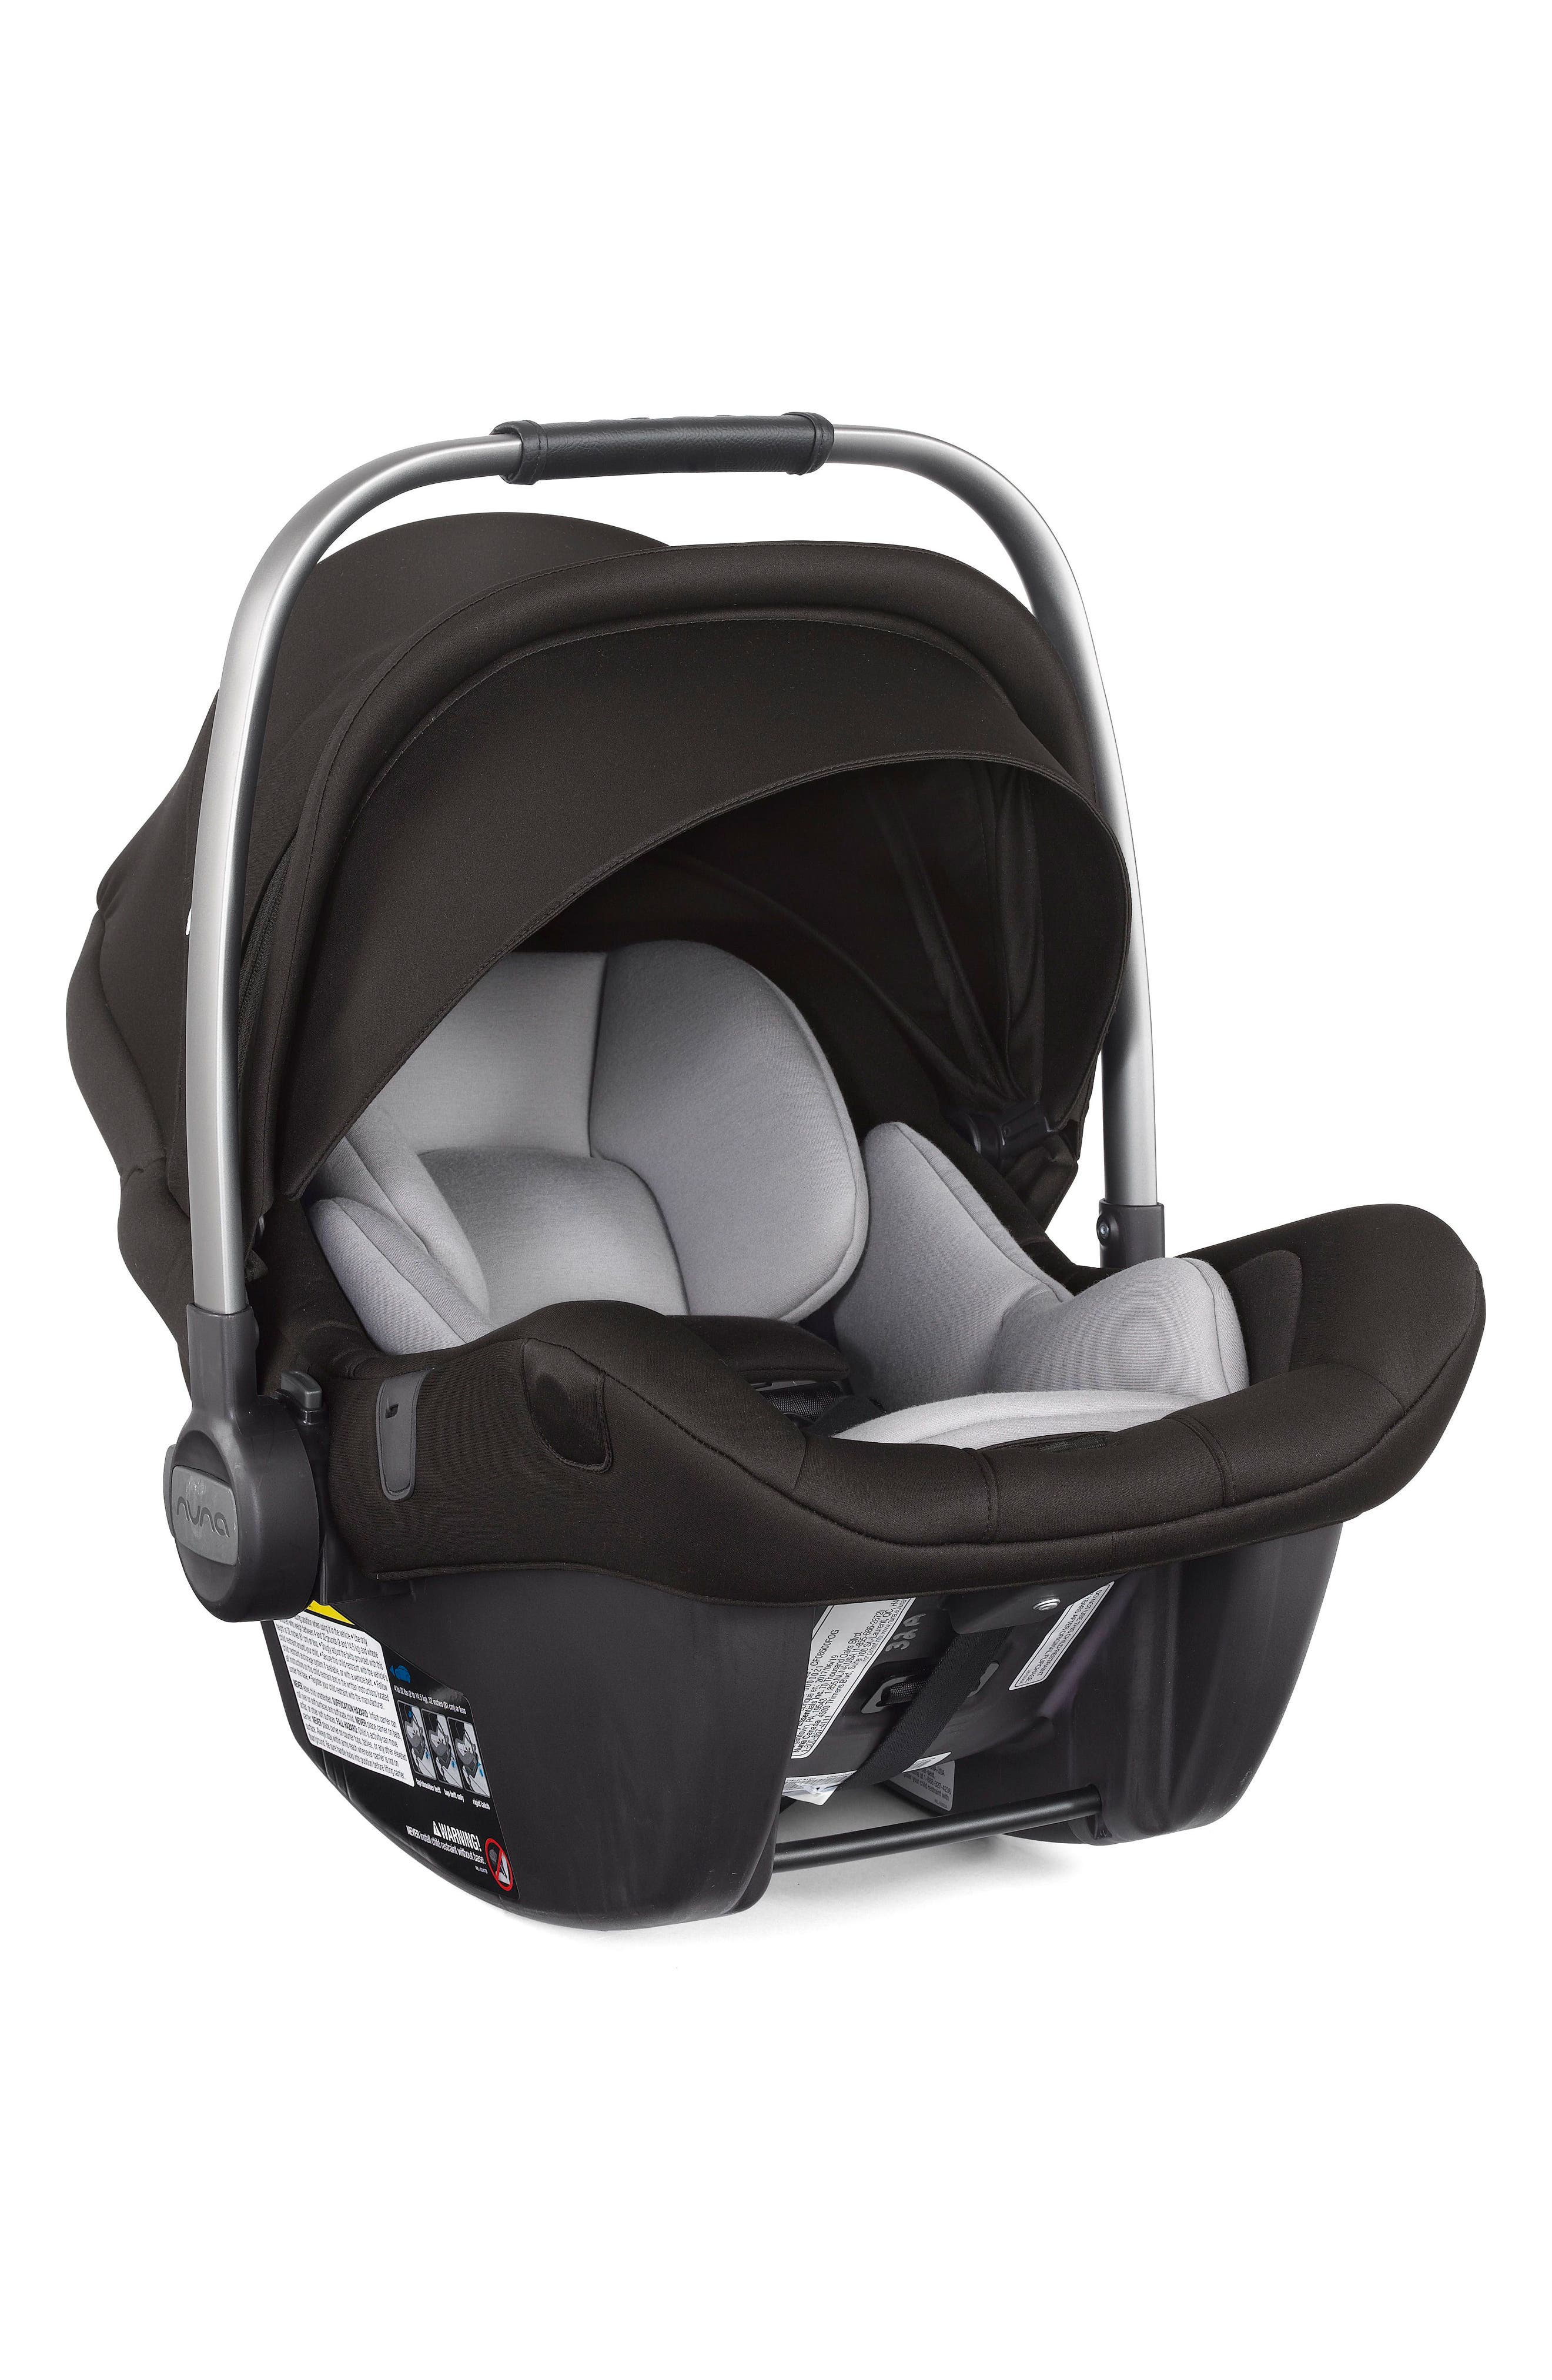 2017 PIPA<sup>™</sup> Lite LX Infant Car Seat & Base,                             Alternate thumbnail 11, color,                             Caviar